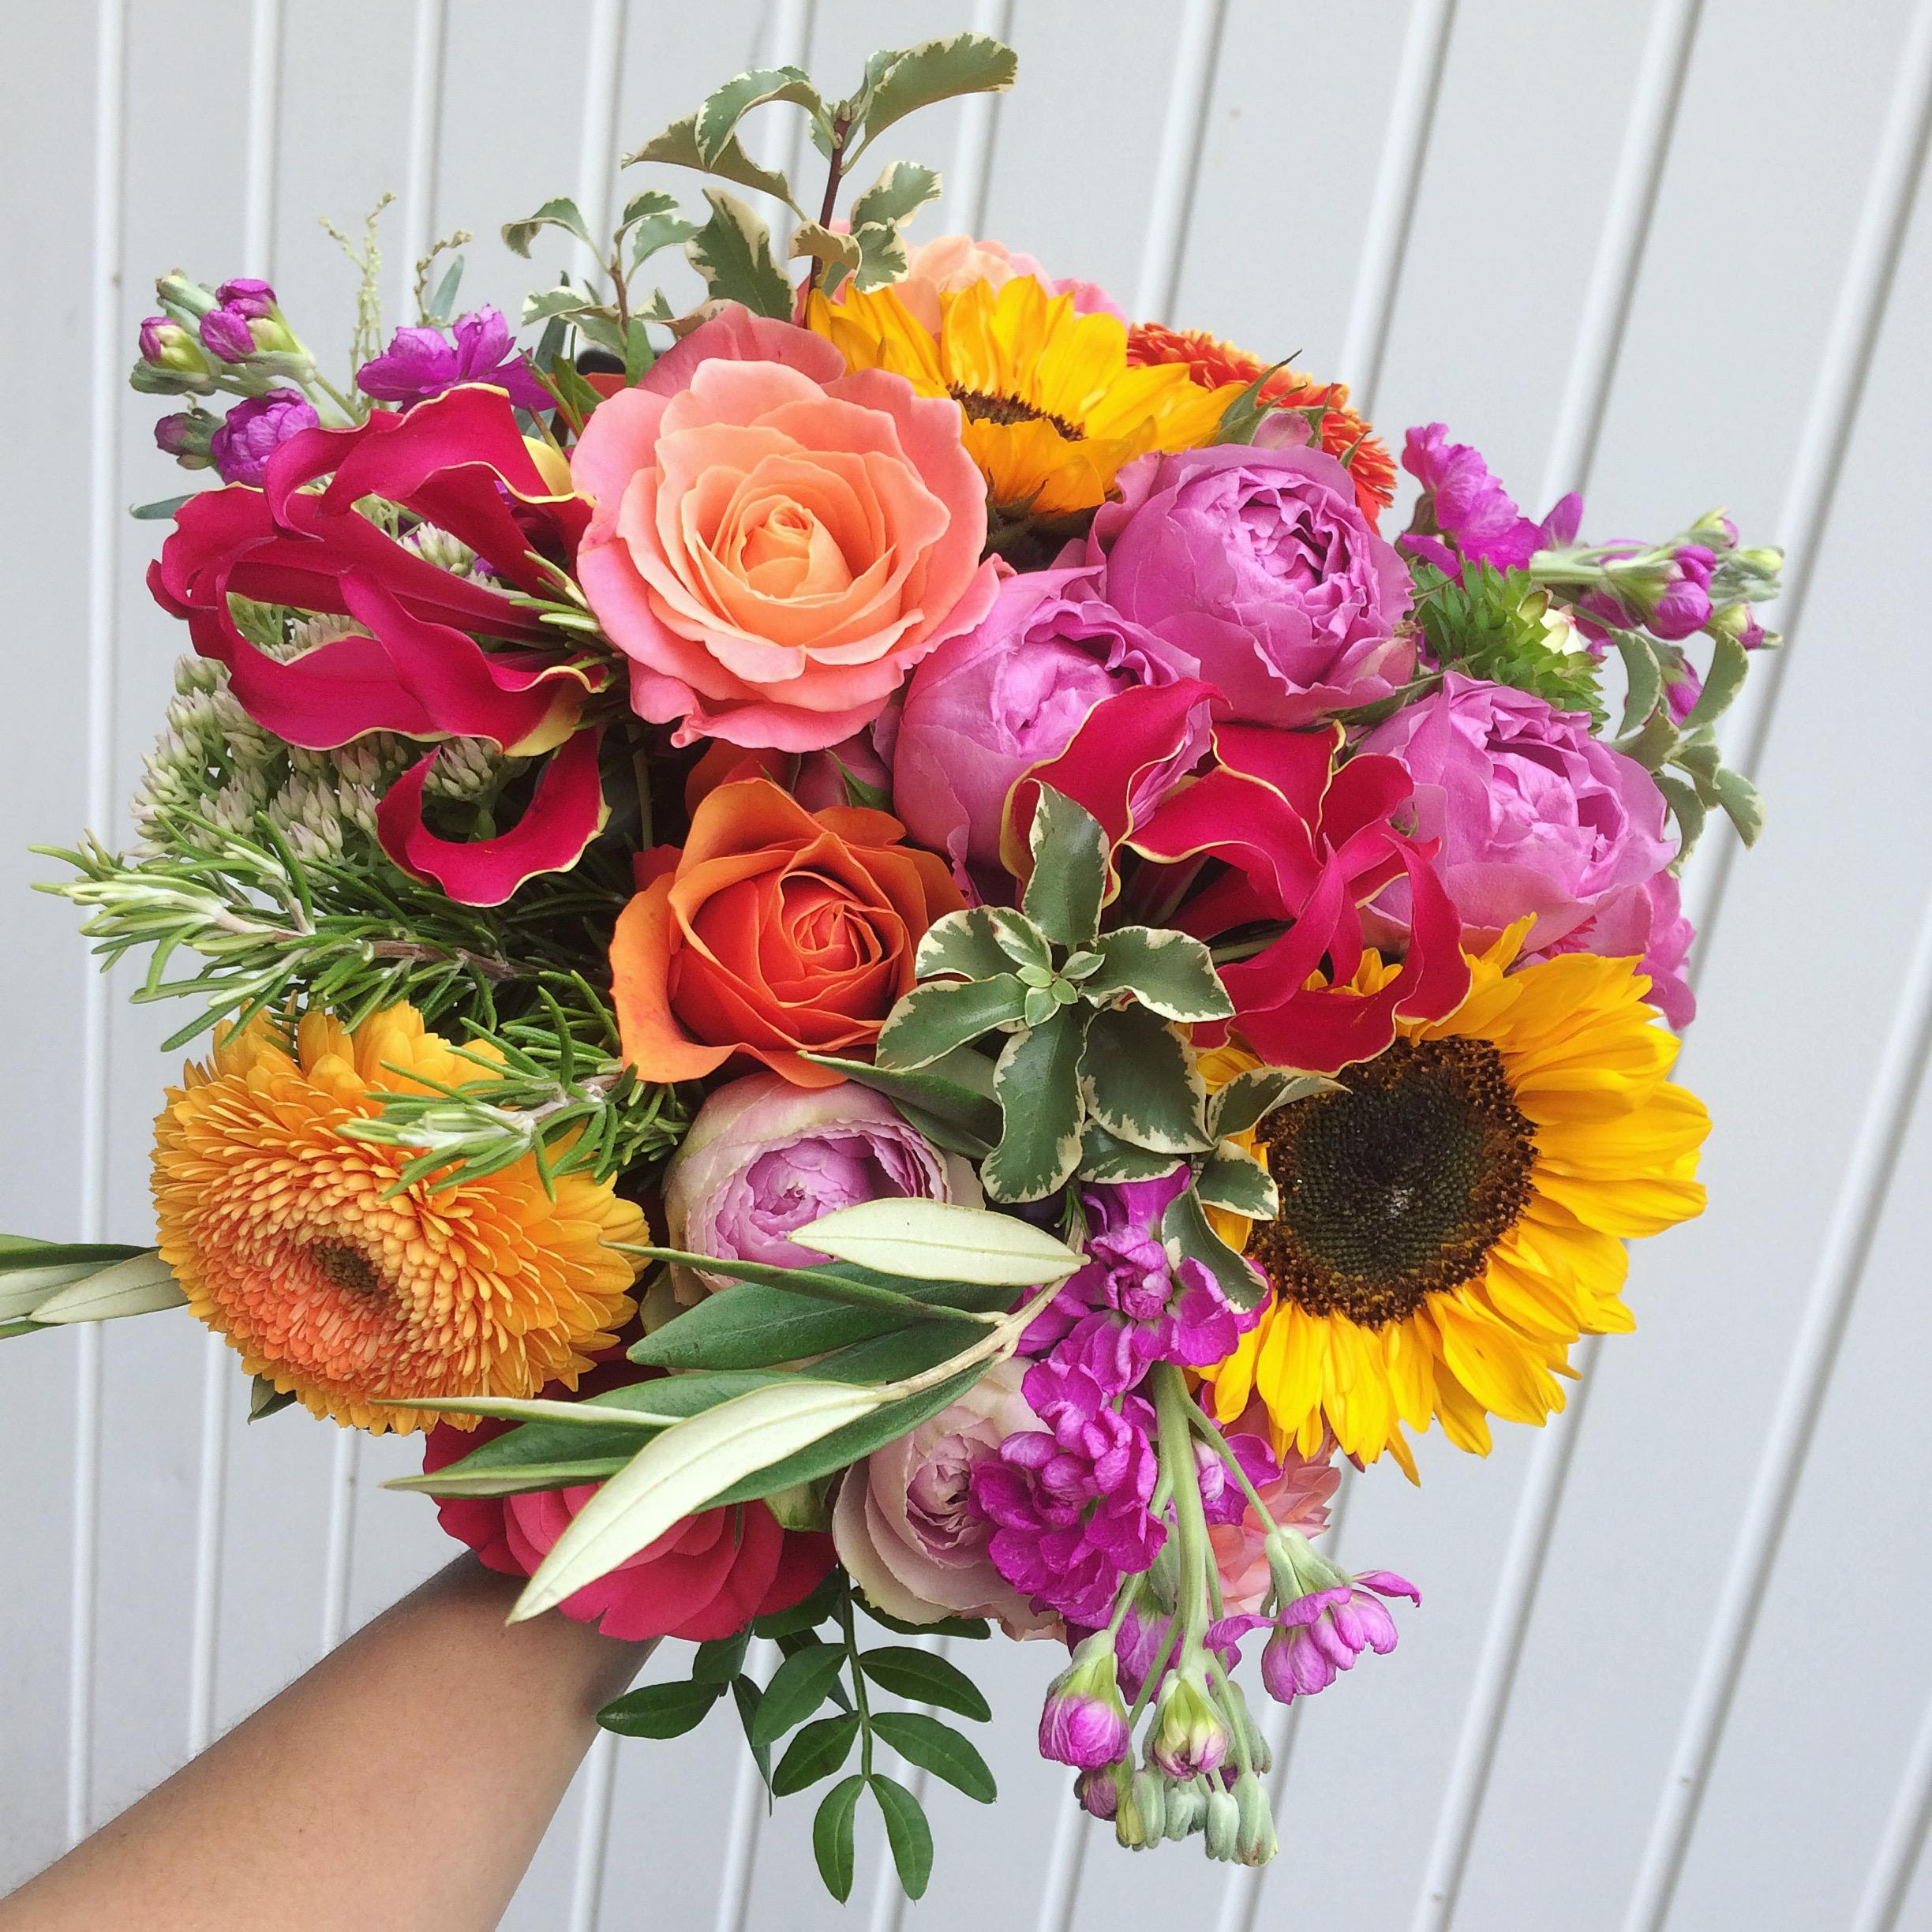 hot cerise pink and yellow bridal bouquet with sunflowers